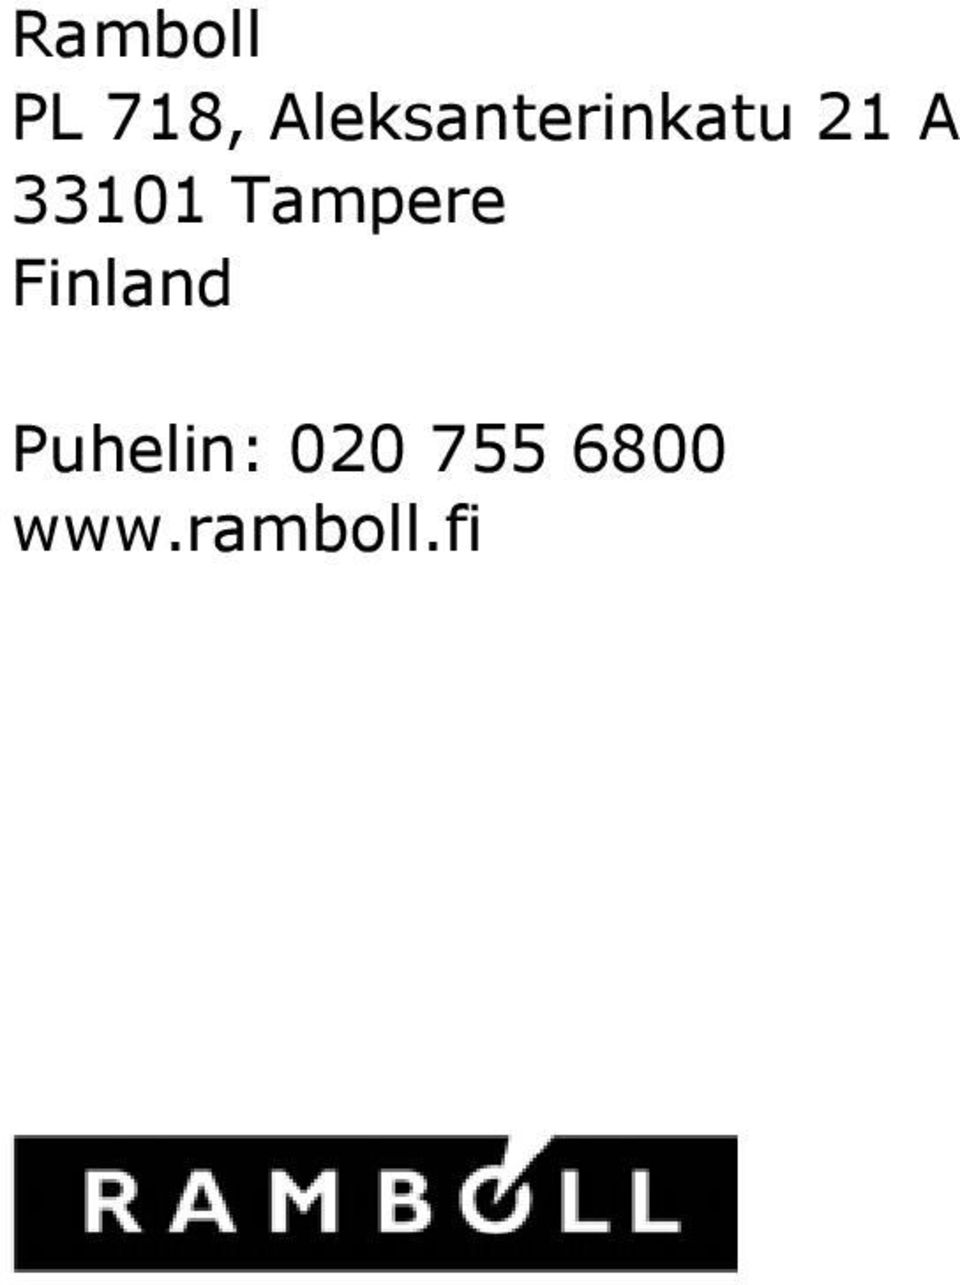 33101 Tampere Finland